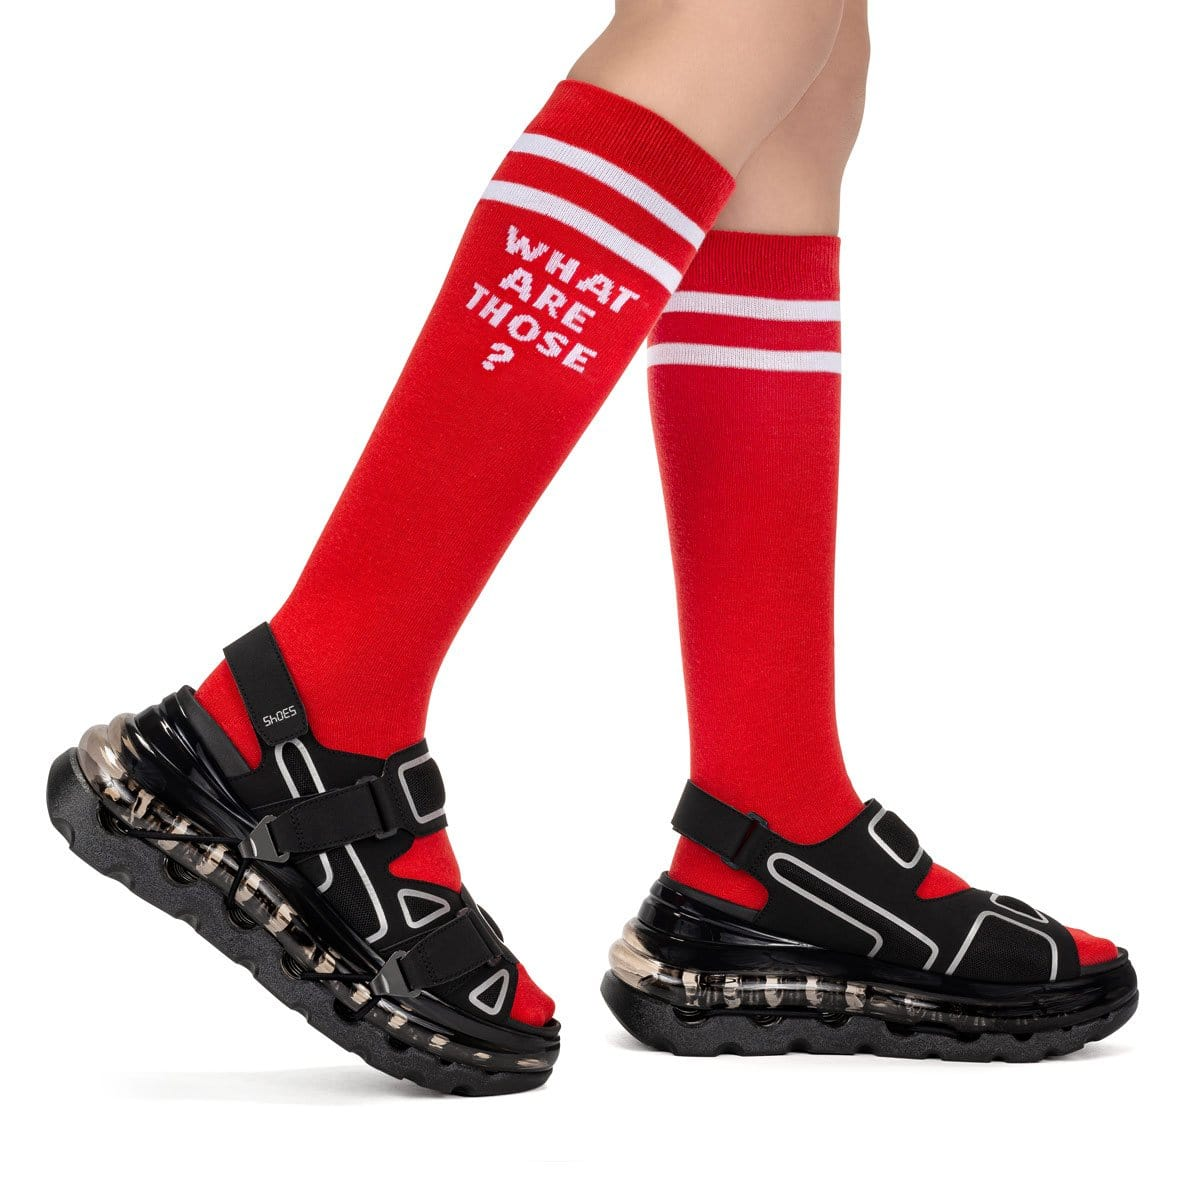 SHOES 53045 - SOCCER SOCKS - RED